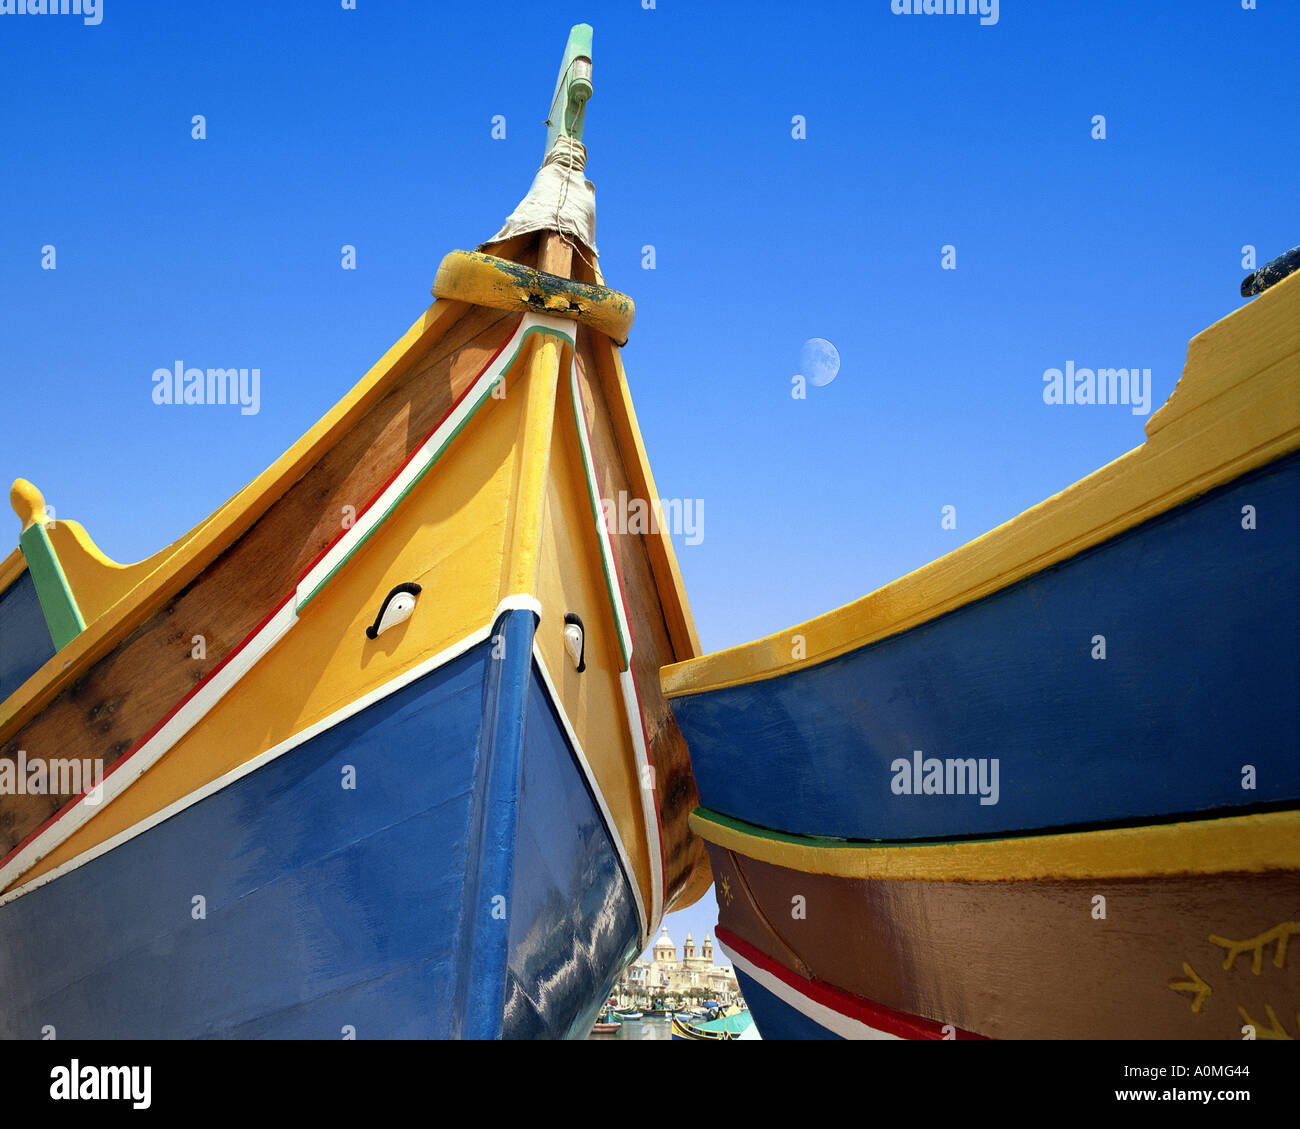 MT - MALTA: Typical Maltese Boats at Marsaxlokk Harbour Stock Photo